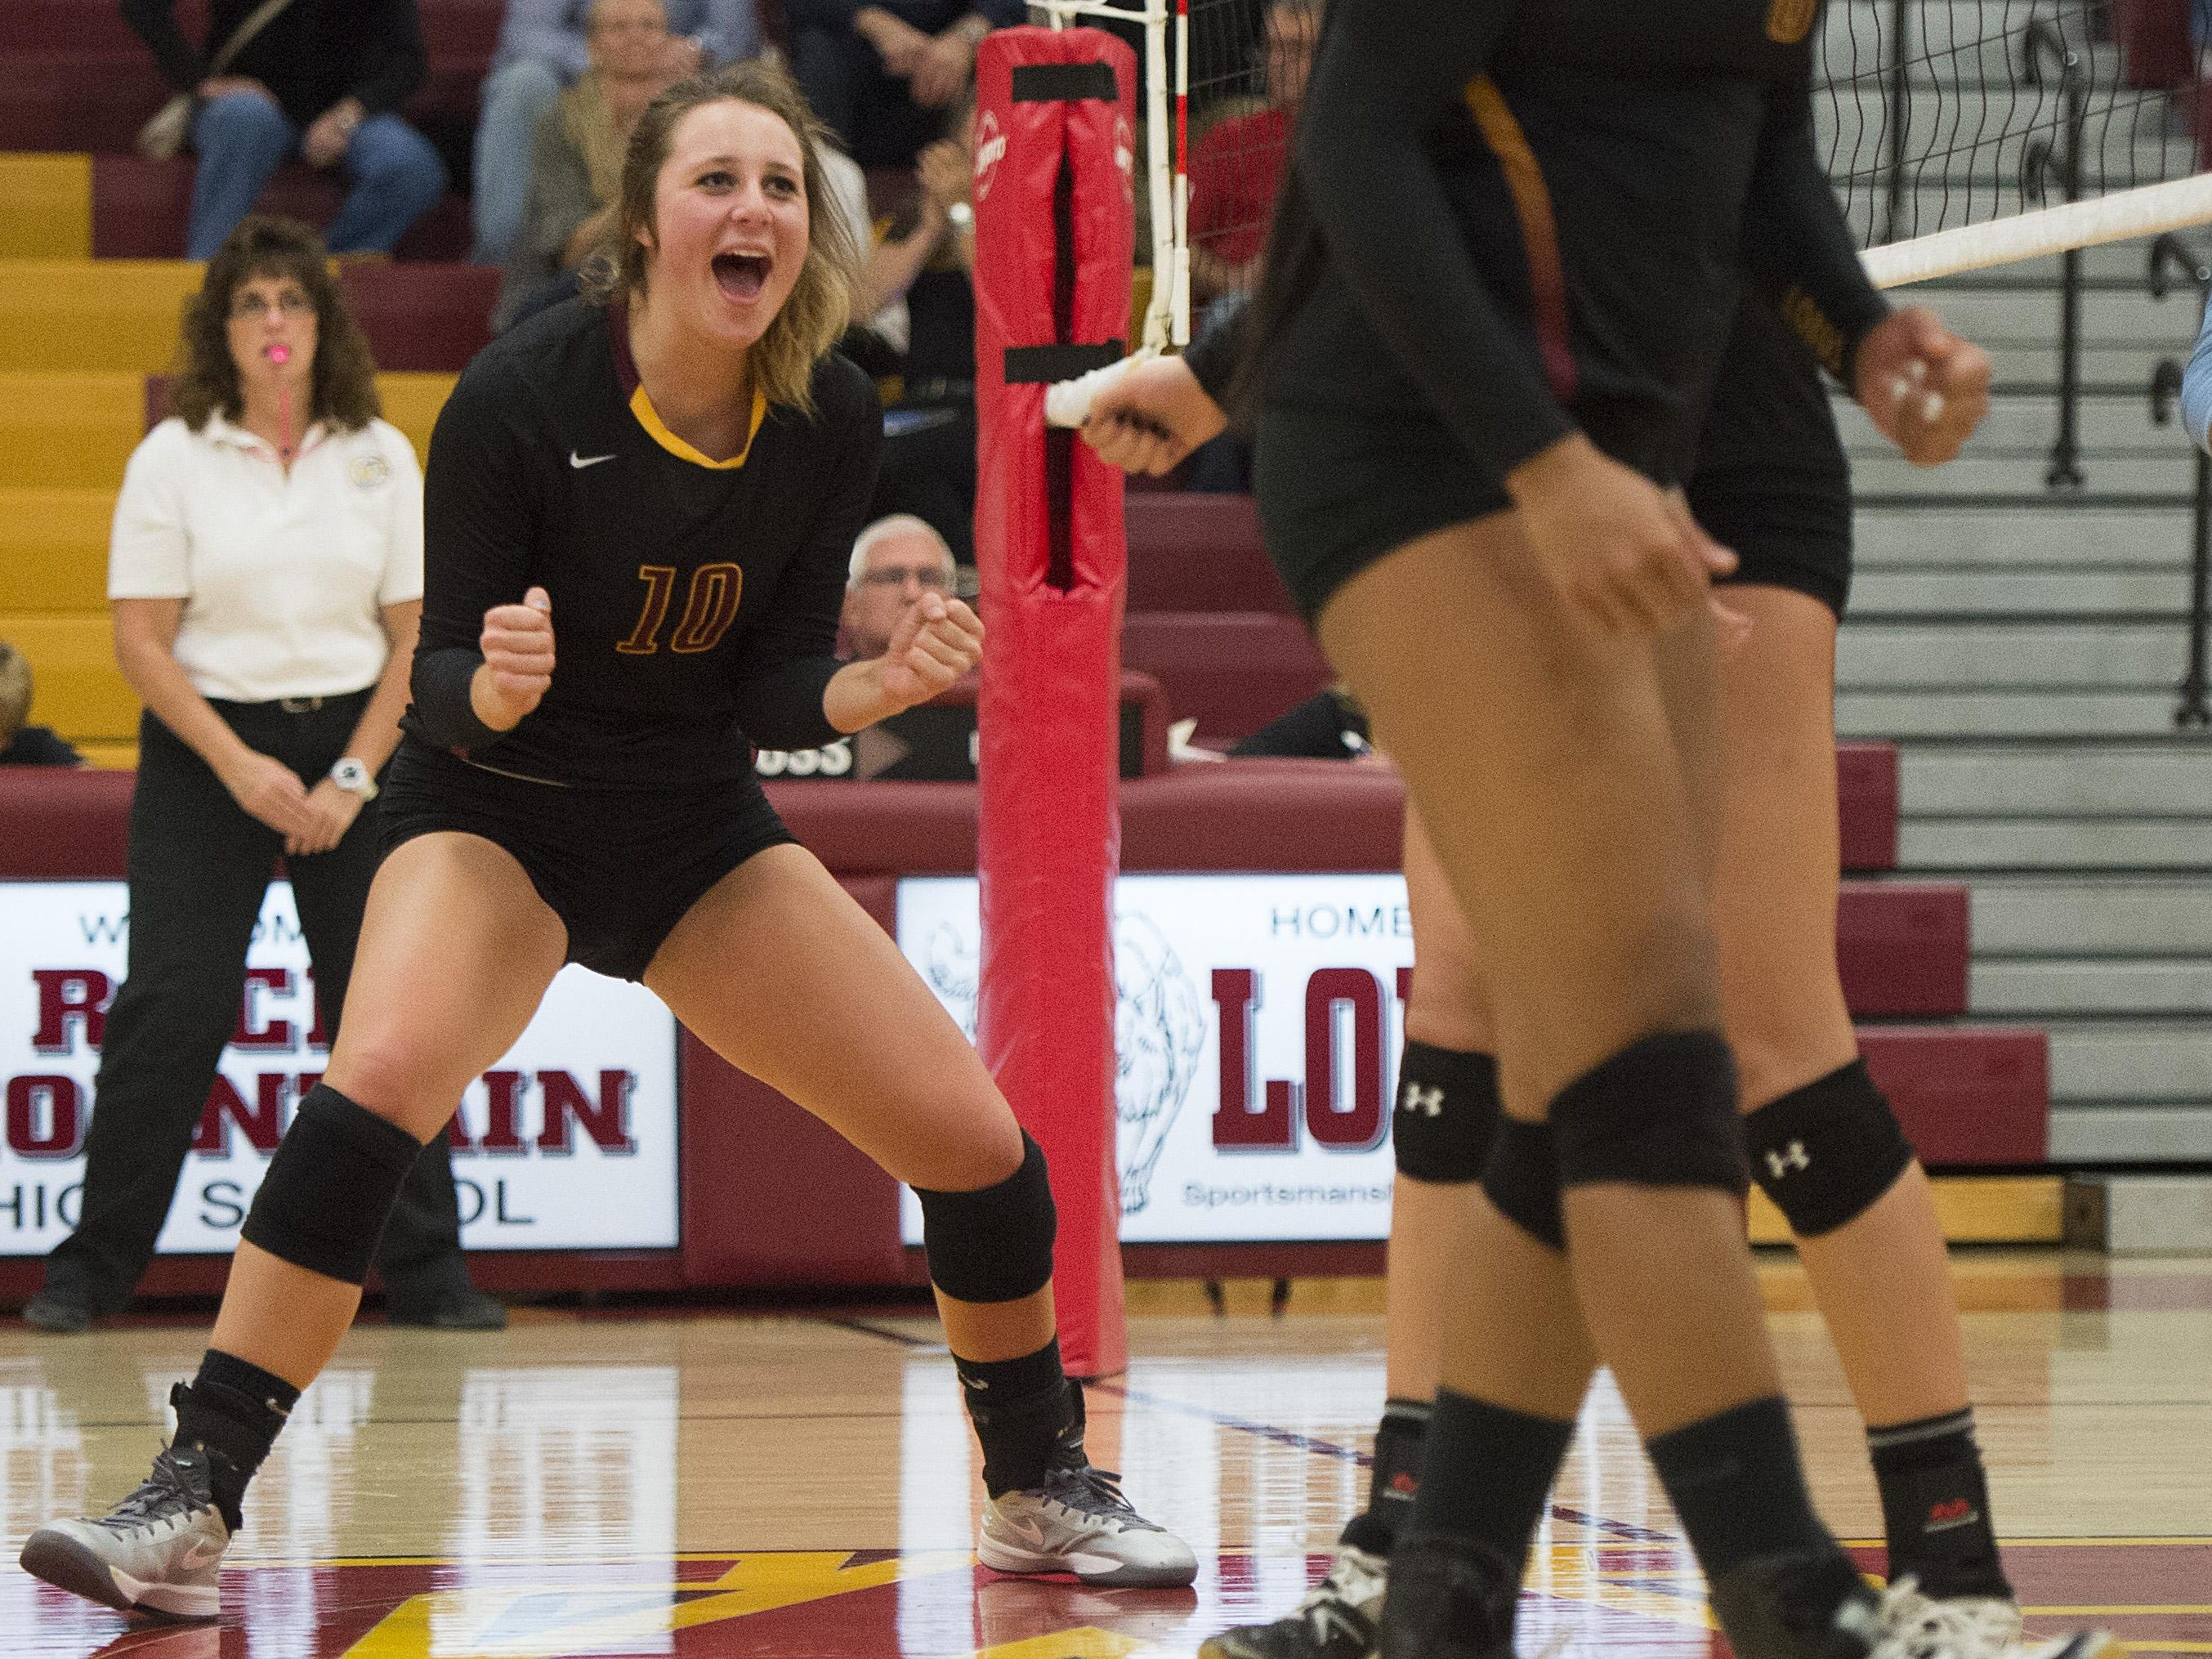 Macie Linne of Rocky Mountain High School celebrates in a match earlier this season. The Lobos play at Fairview in a conference-title match on Tuesday.